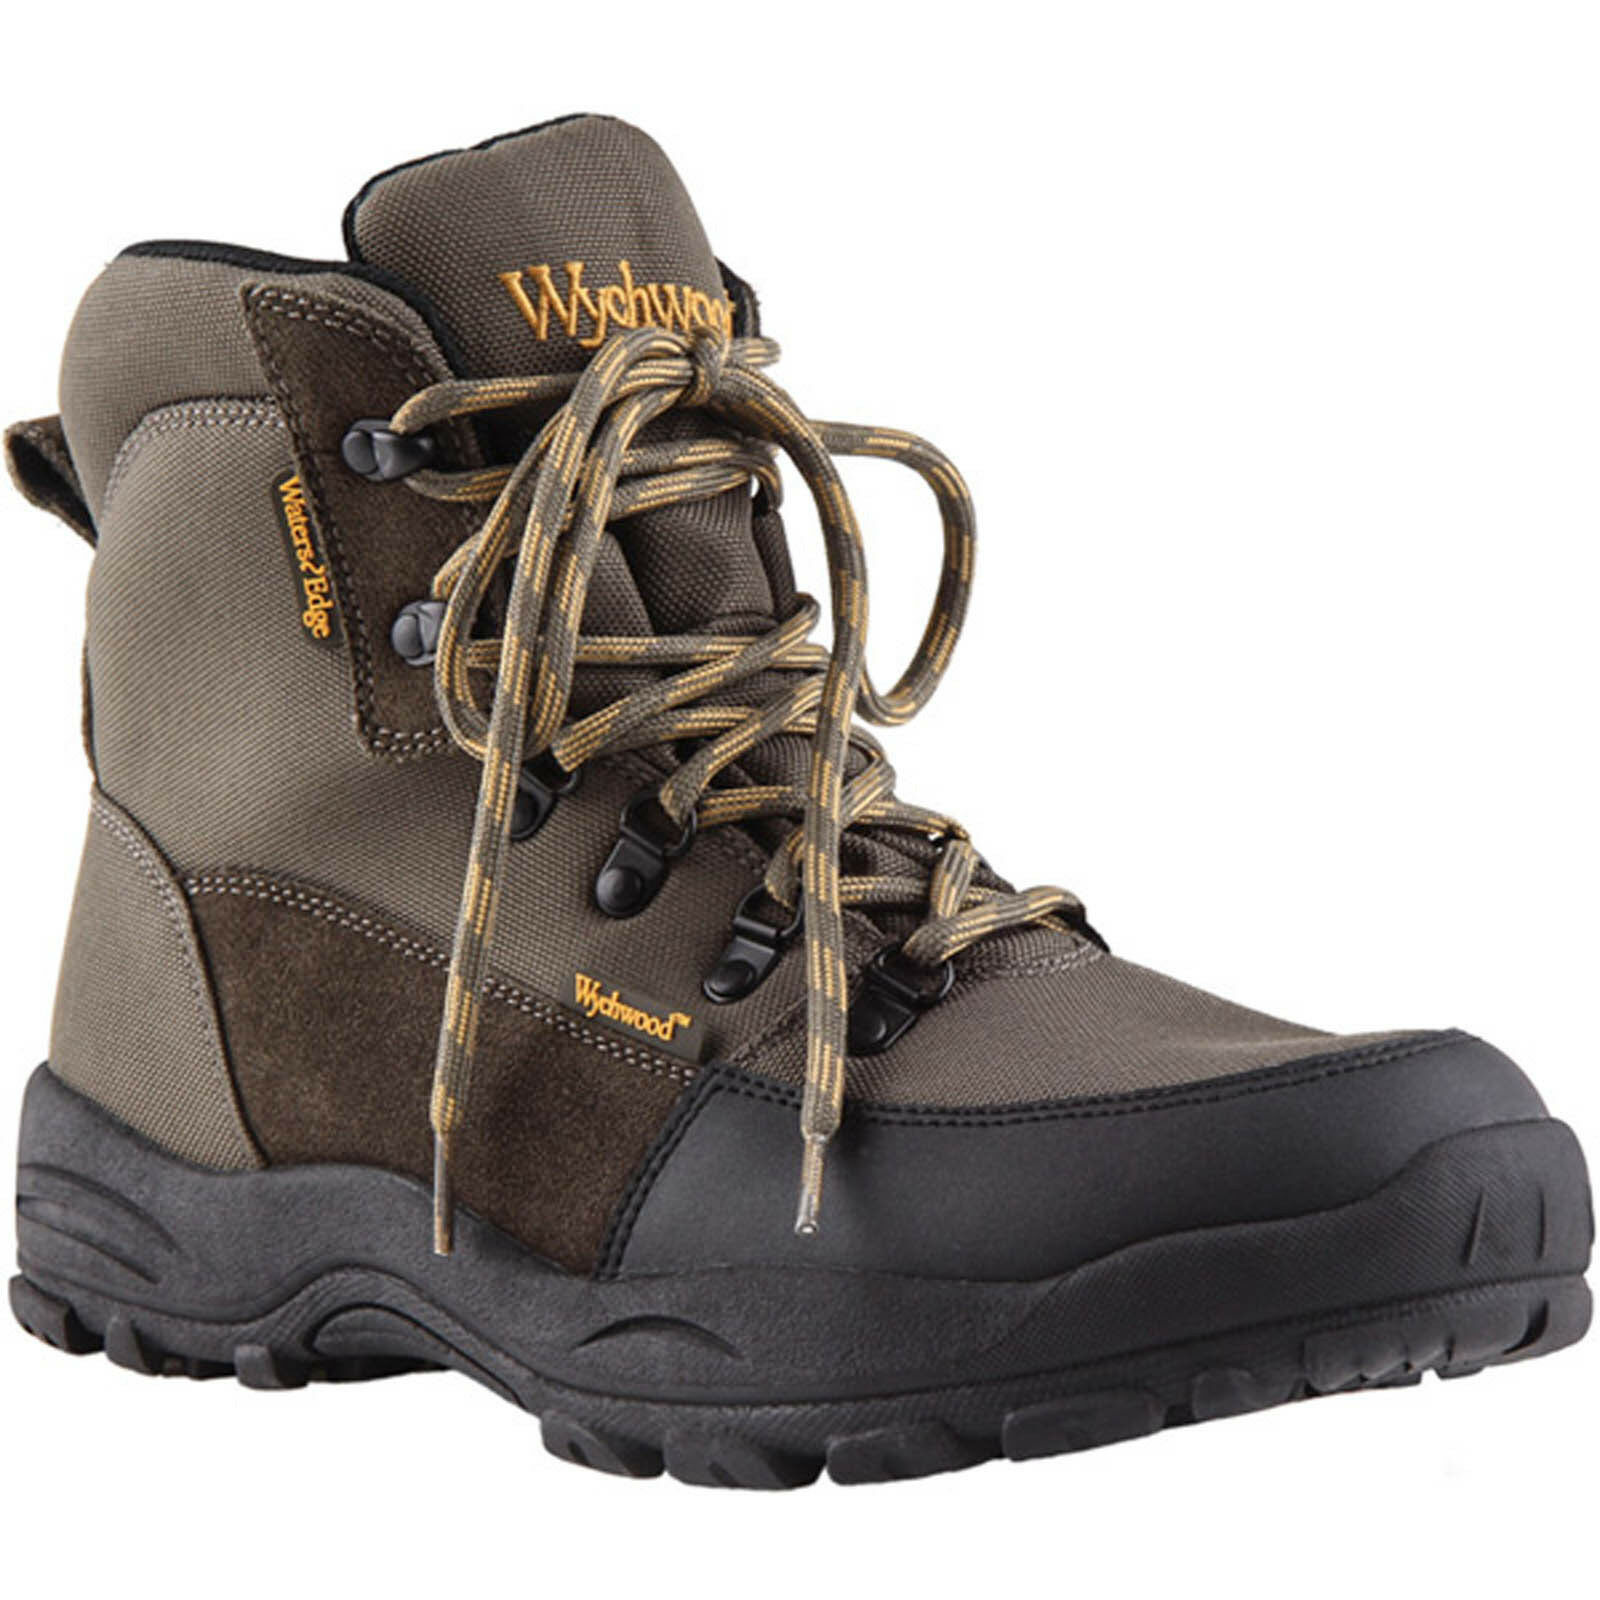 Wychwood Fishing Water's-Edge Water Resistant Boots - Sizes 7 - 12